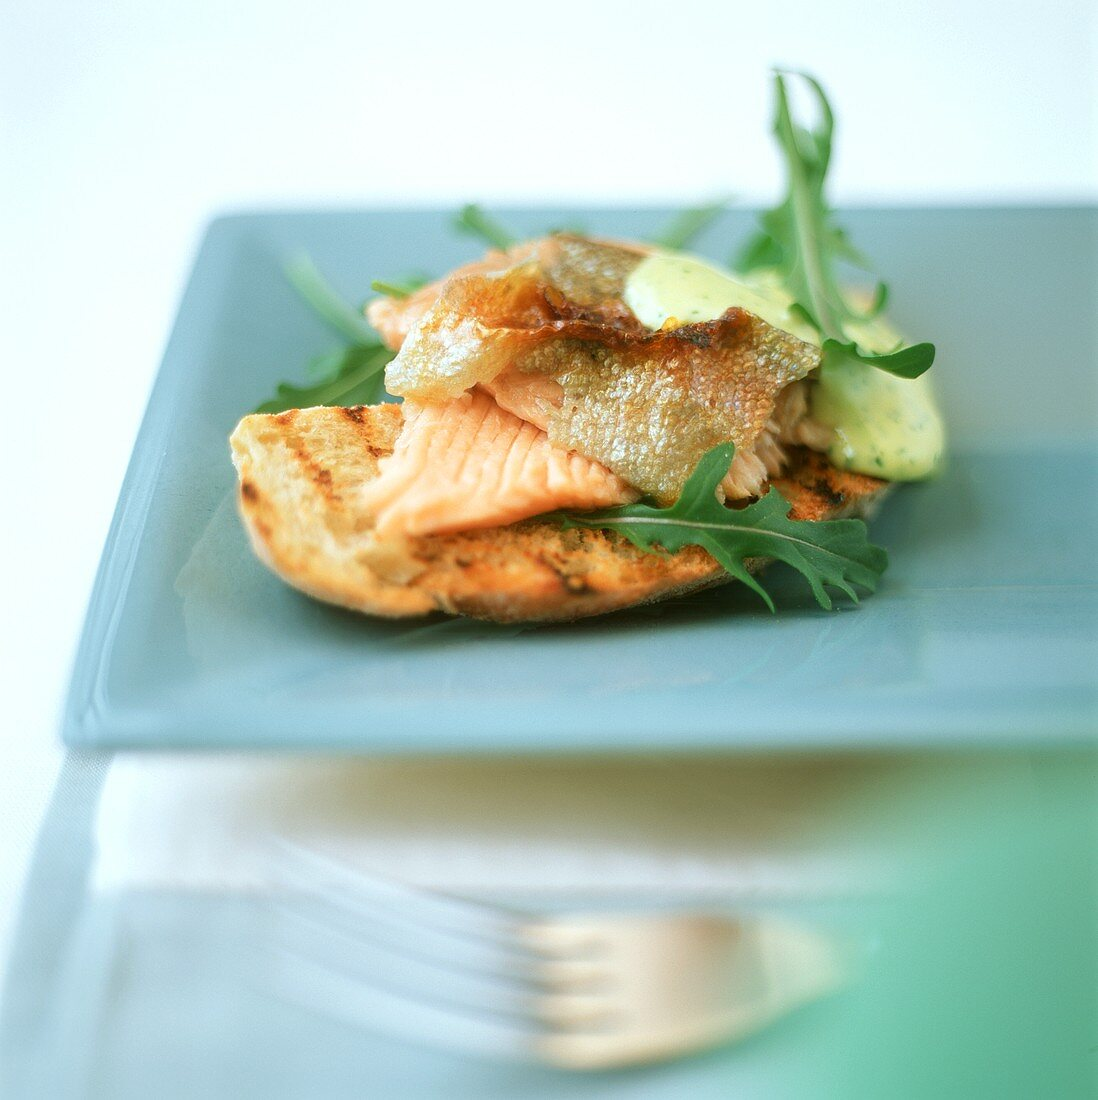 Salmon trout with rocket sauce on toasted ciabatta